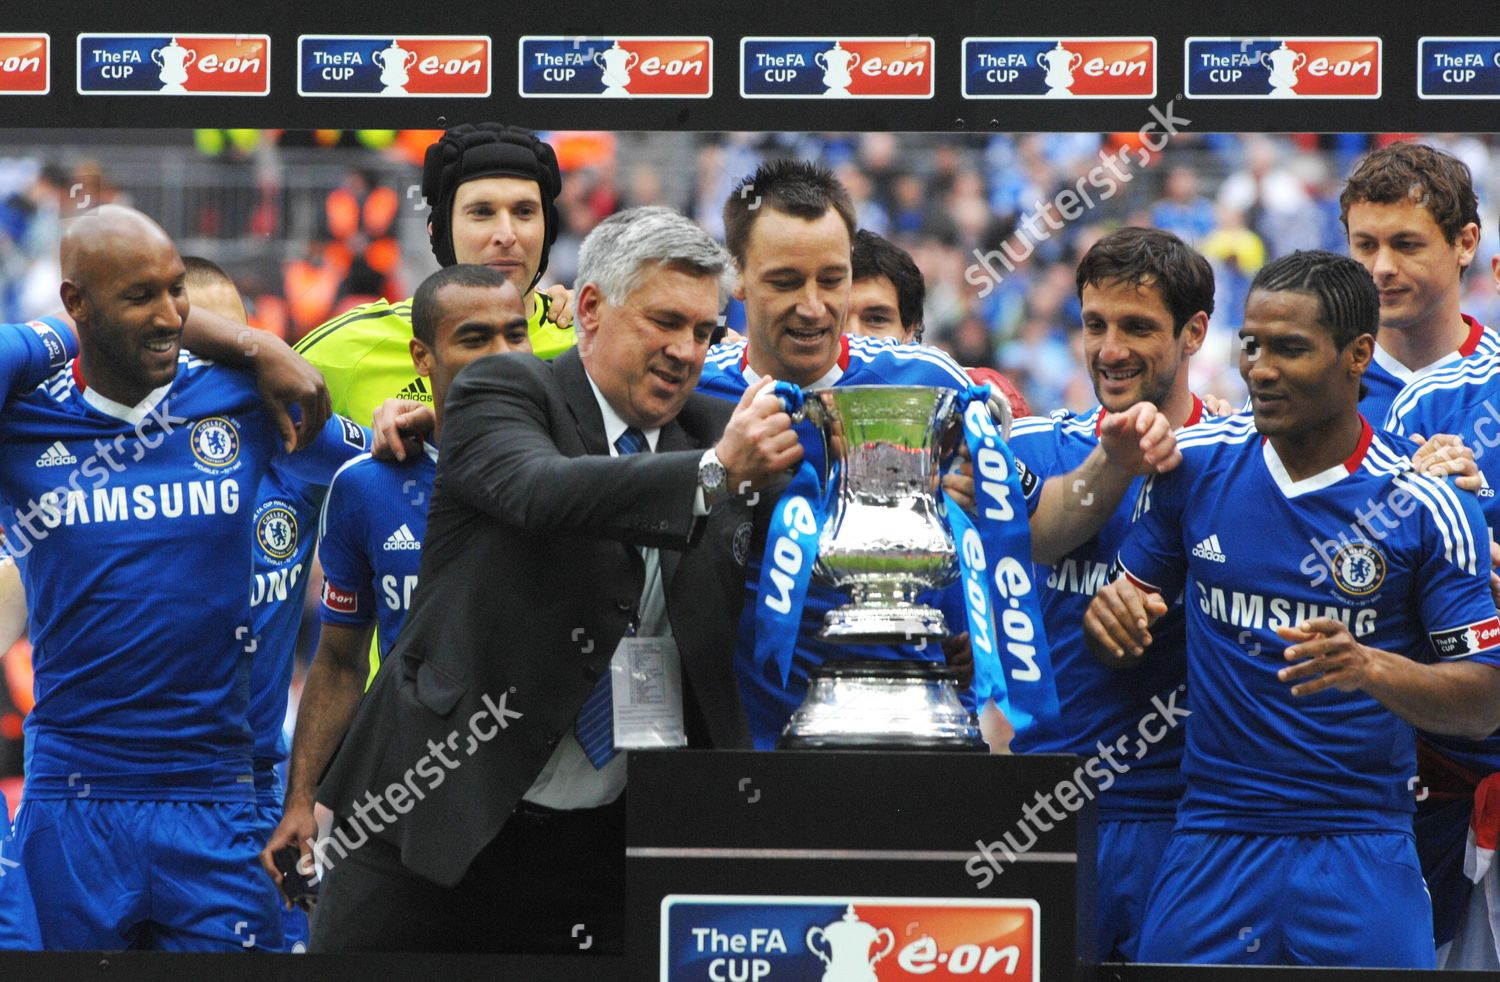 2010 FA Cup Final